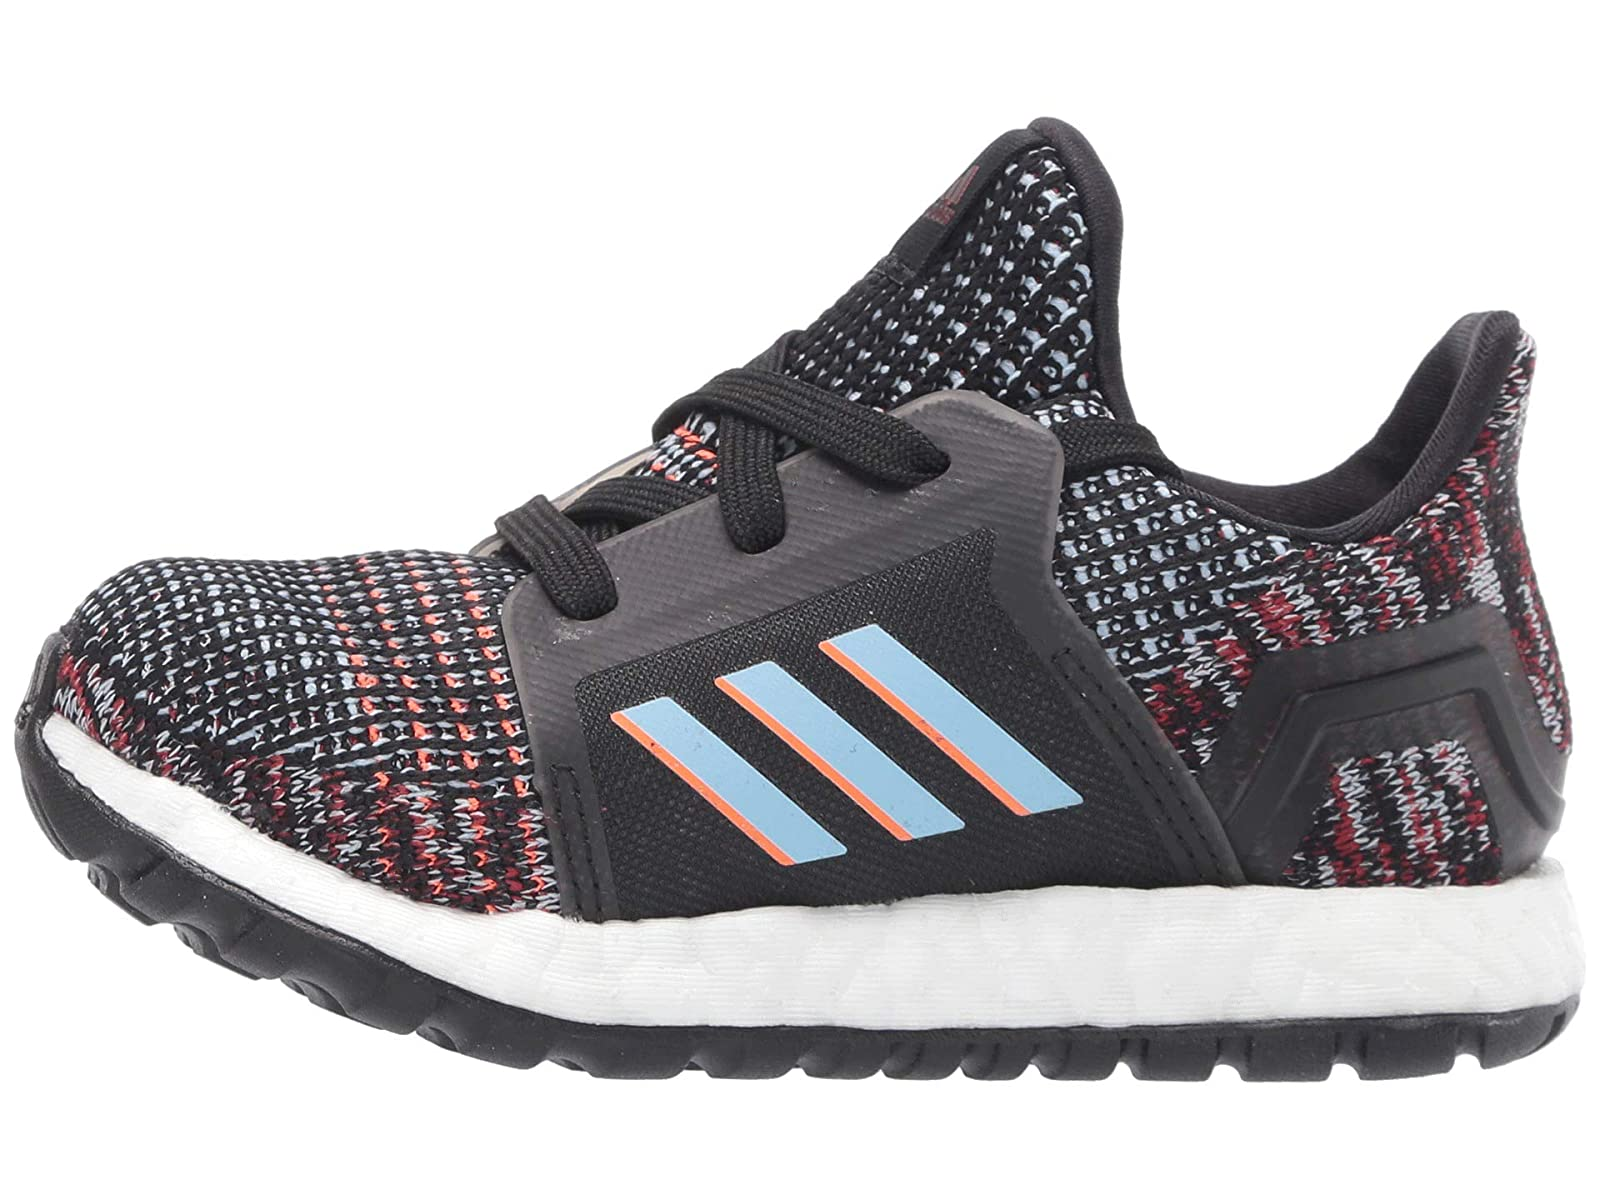 check out 04e1b 31758 Details about Children Unisex Shoes adidas Kids UltraBoost 19 (Toddler)